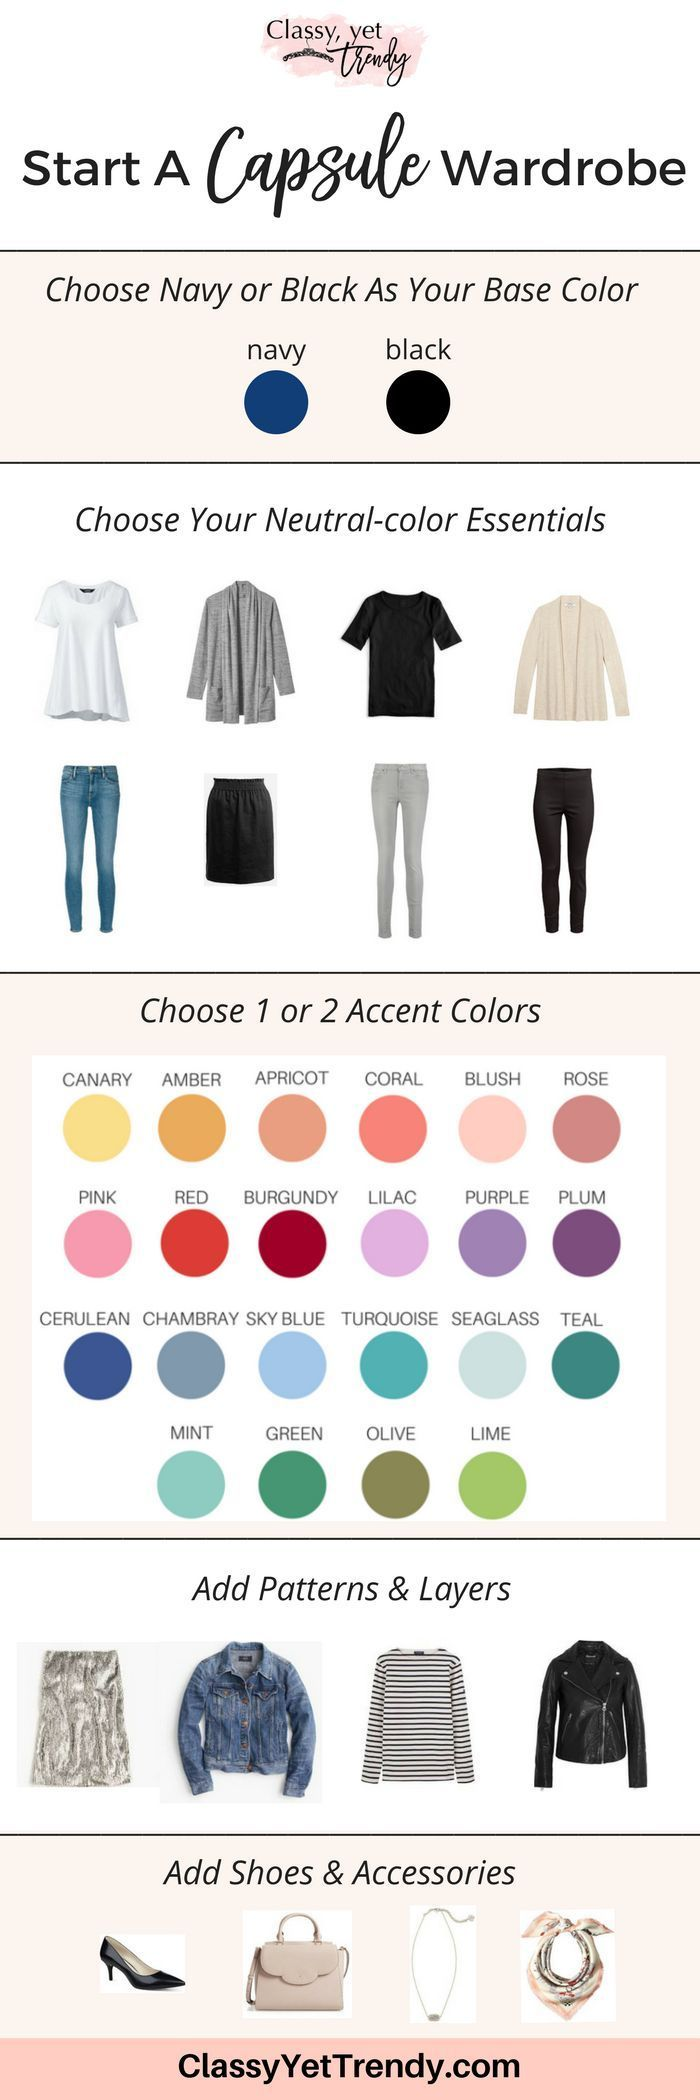 Learn how to create a capsule wardrobe using the 5-step visual guide! Step